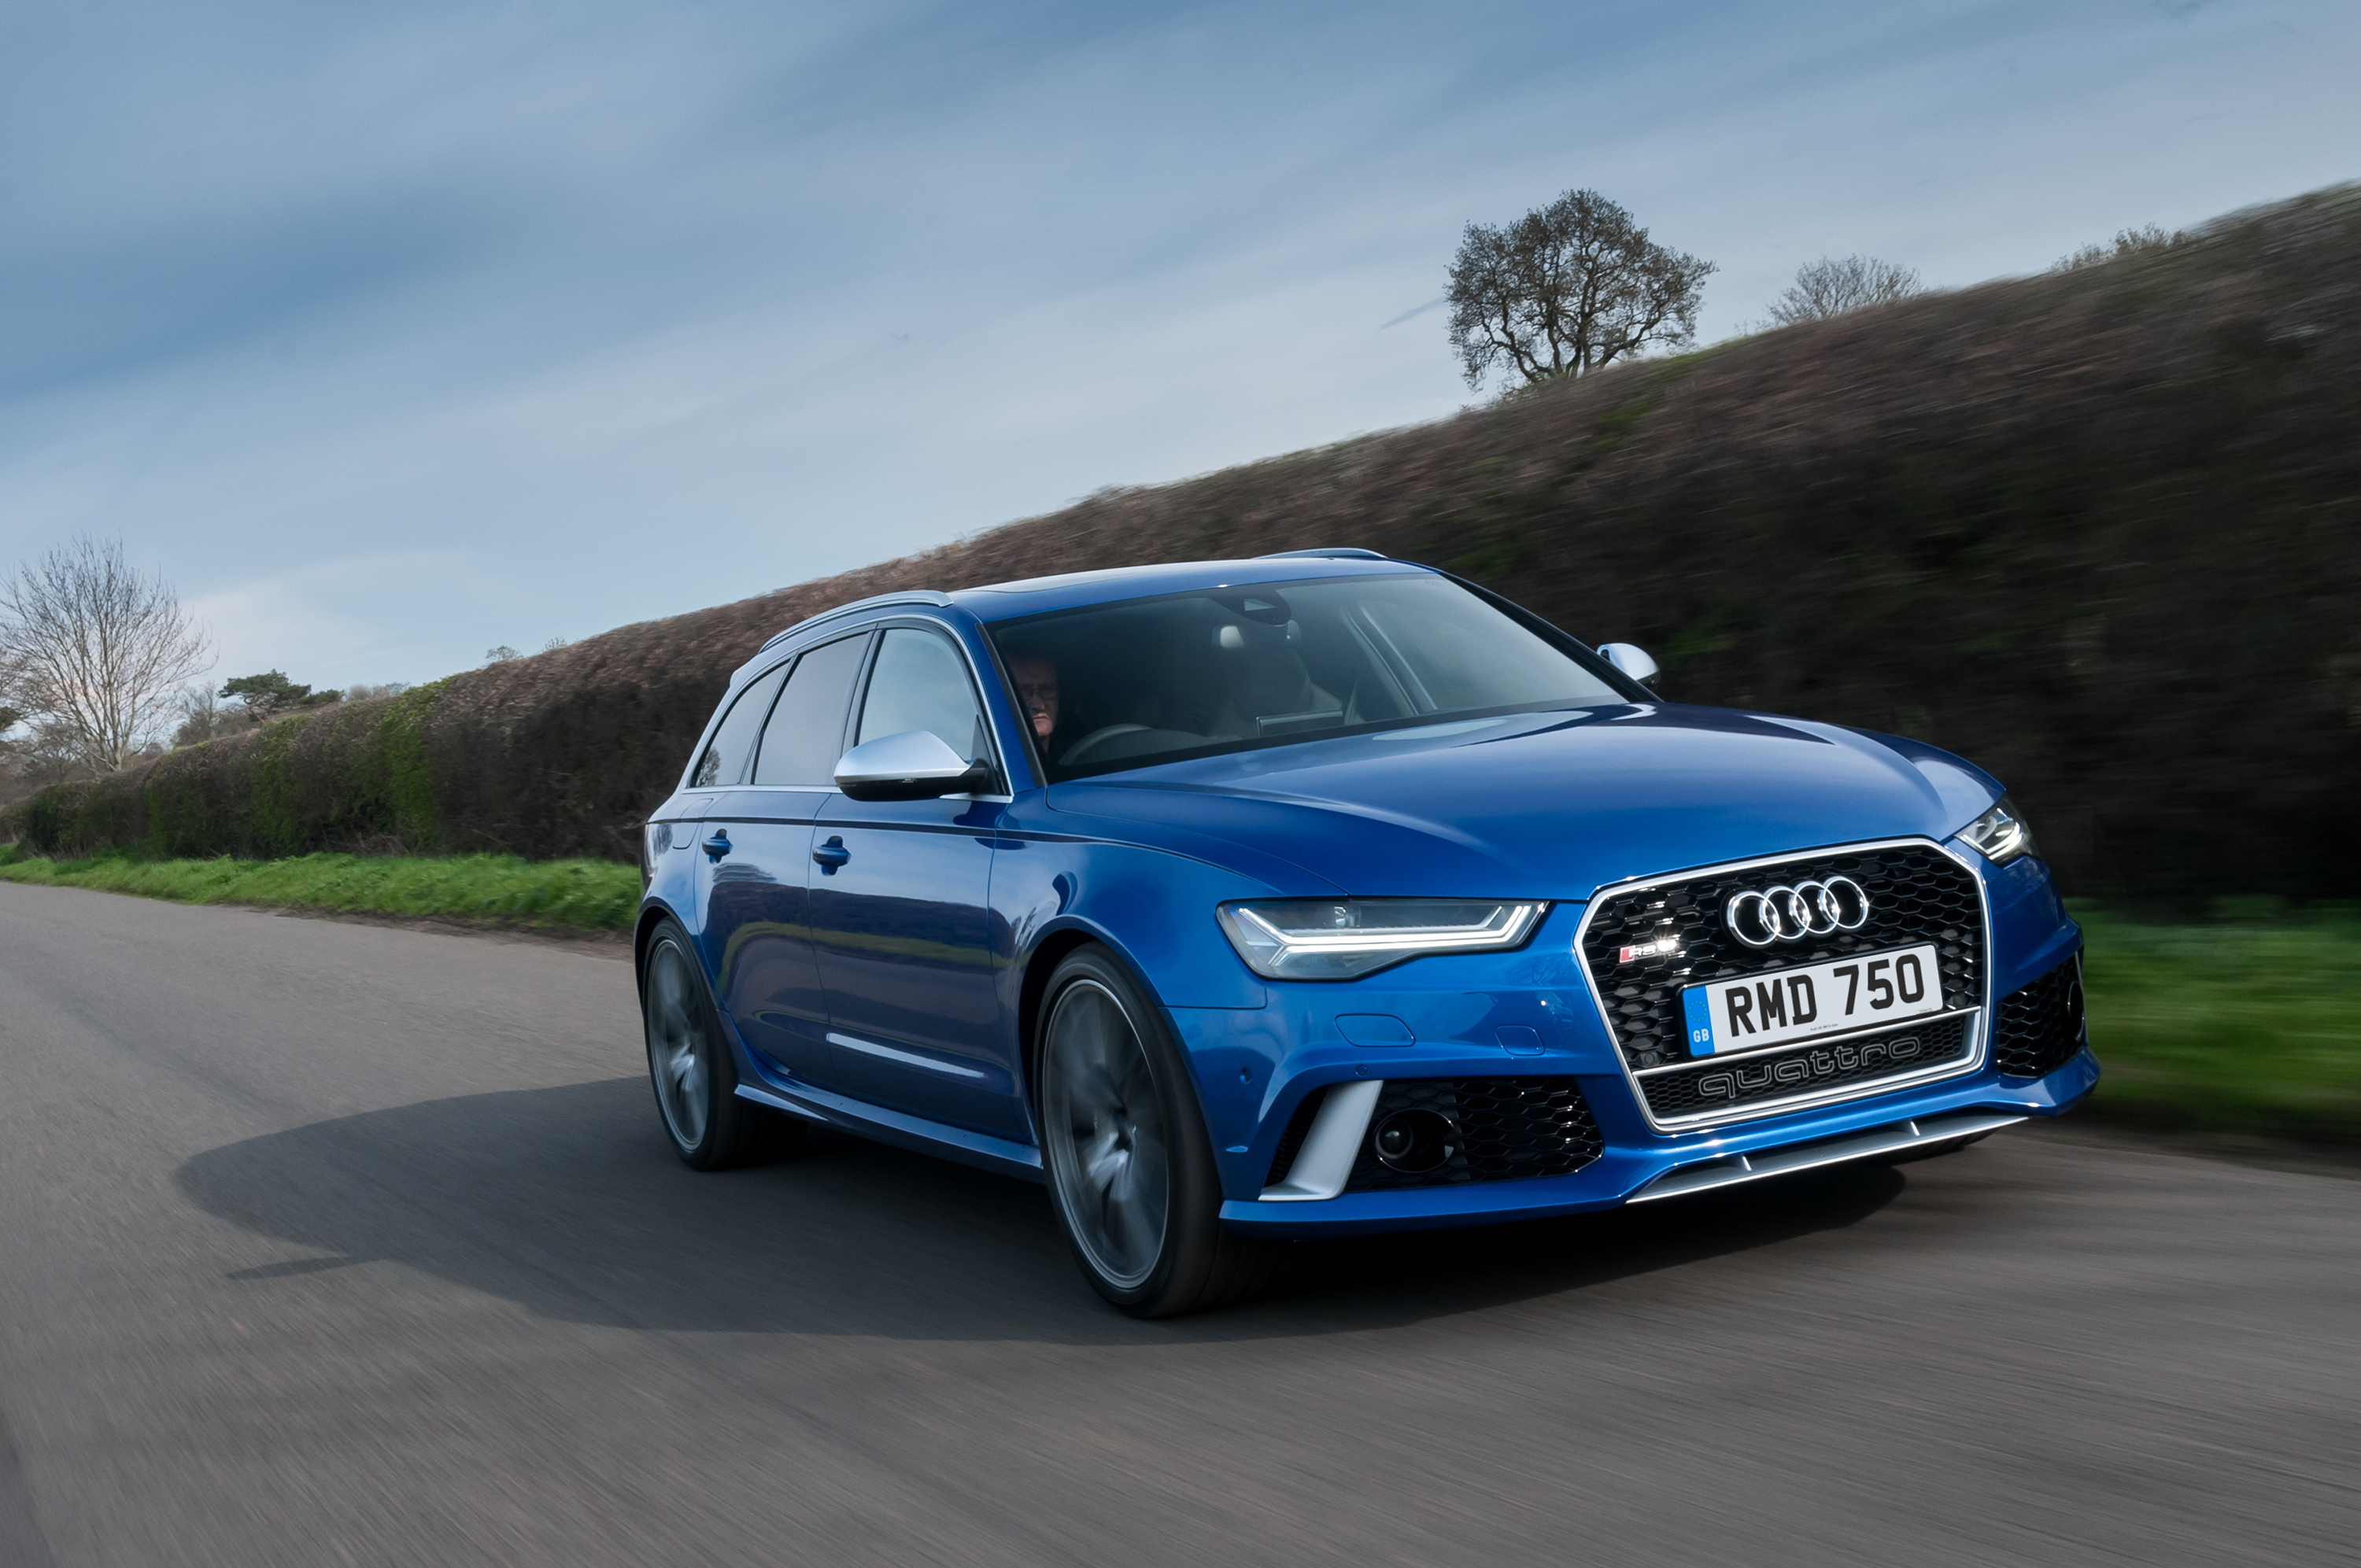 Audi 0 60 >> Audi Rs6 Avant Review Performance And 0 60 Time Evo